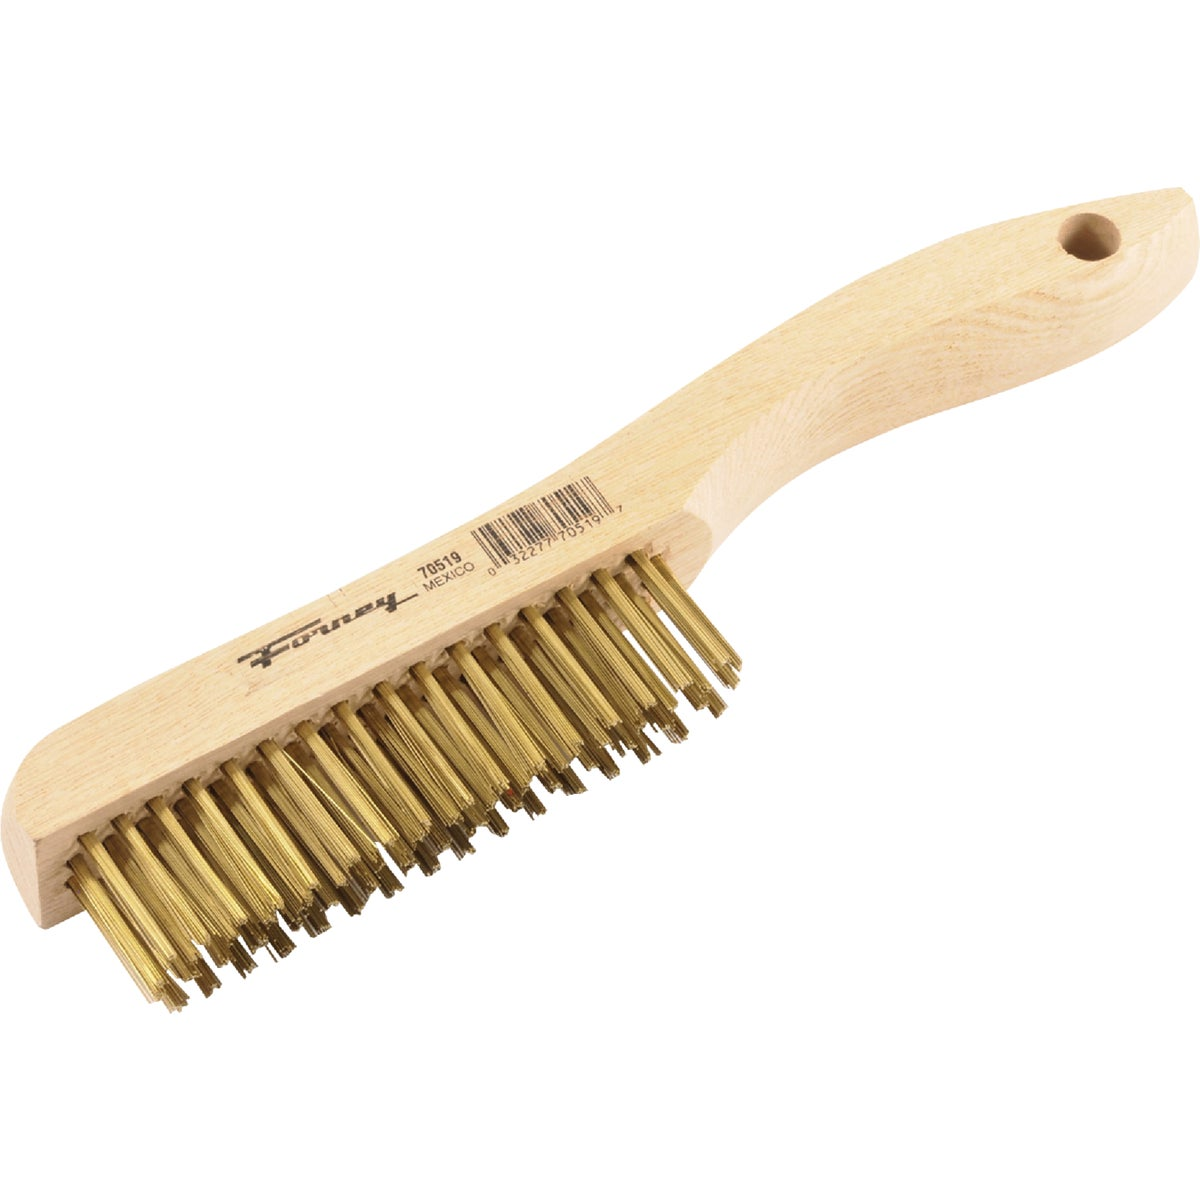 Forney Industries WIRE BRUSH 70519